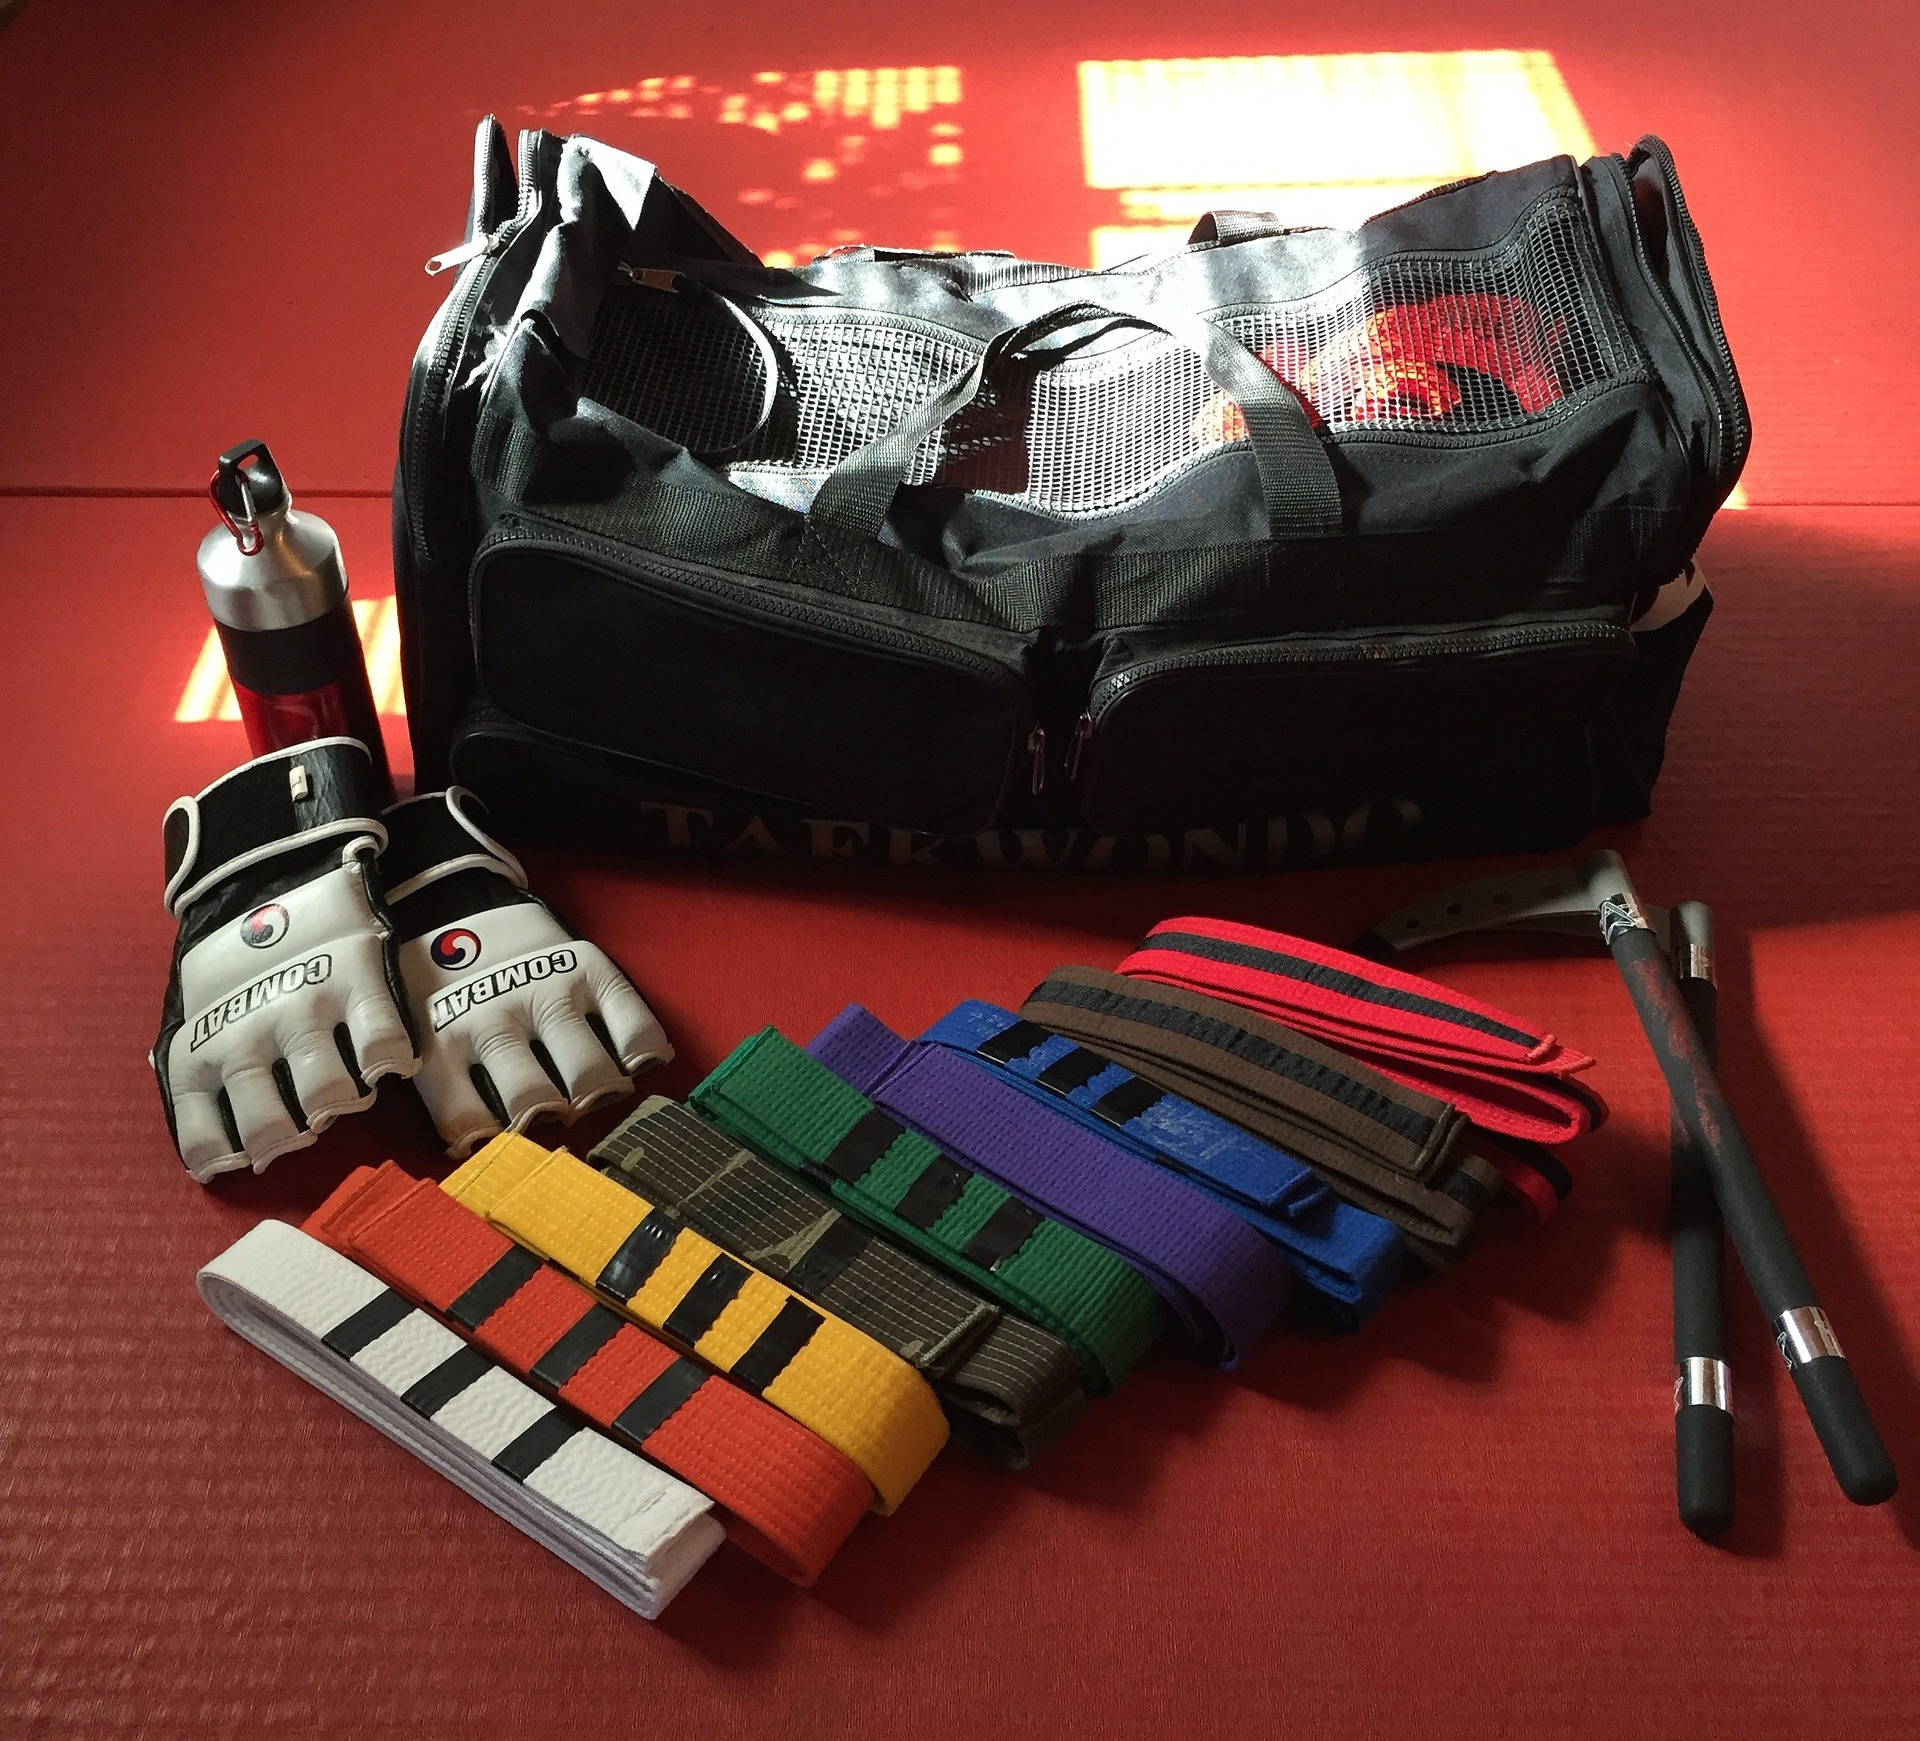 Various colored martial arts belts, sparing gear, and weaponry in front of a gym bag on red carpet